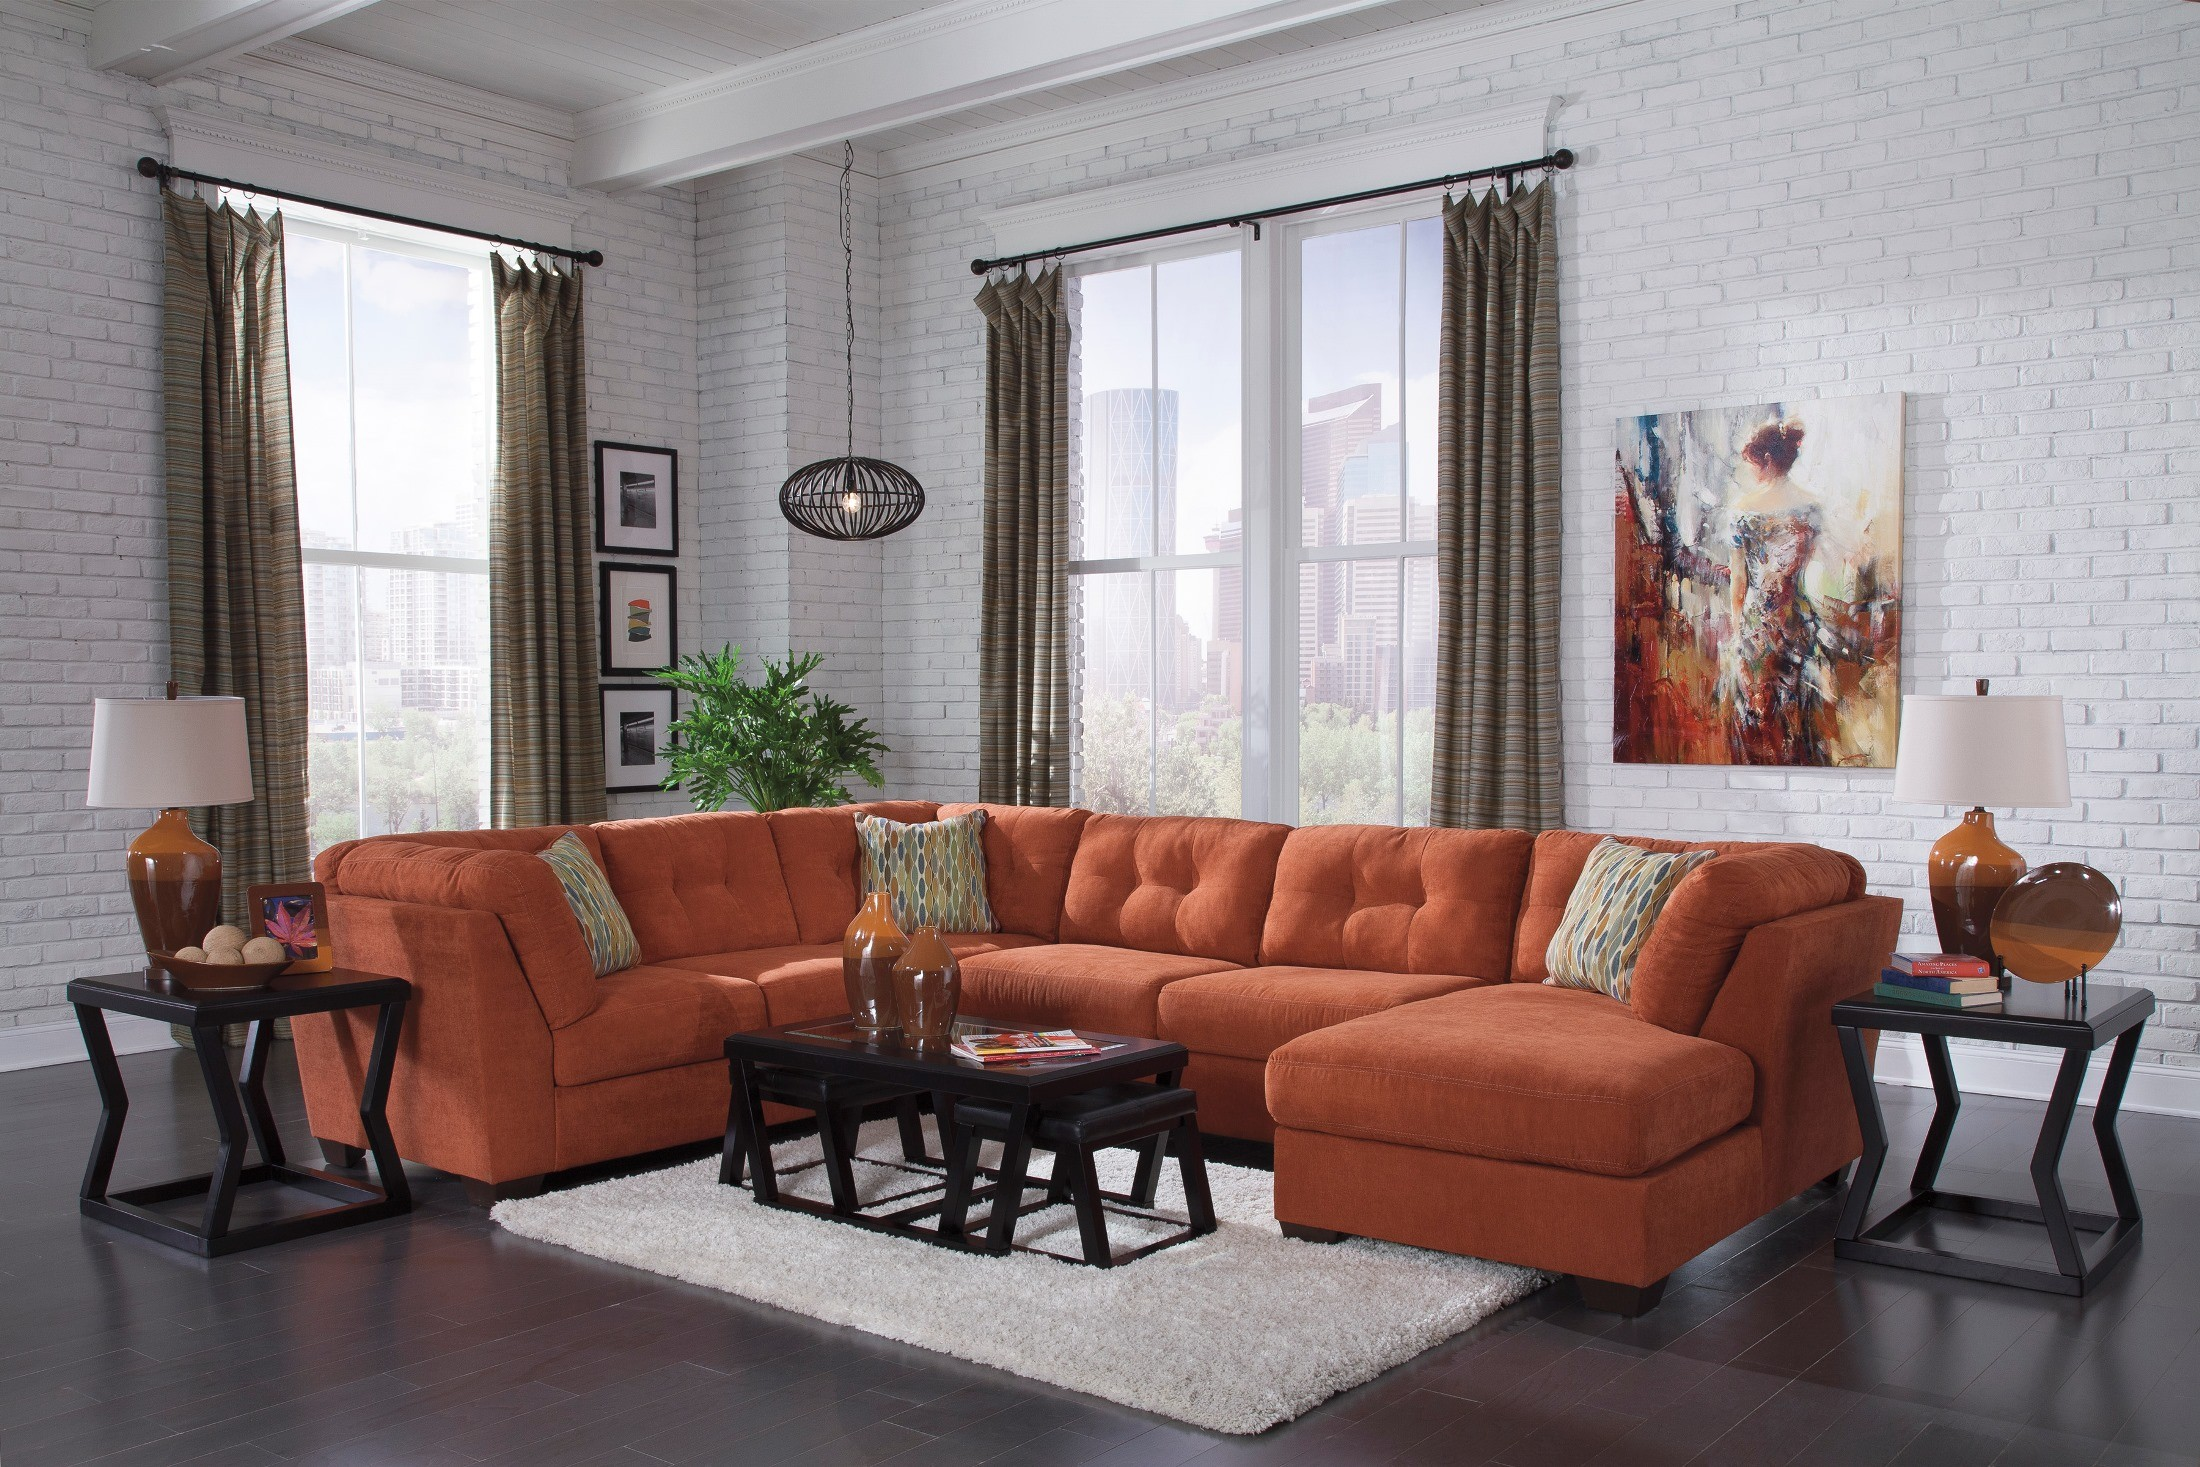 Delta City Rust Raf Sectional From Ashley 19701 38 34 17 Coleman Furniture